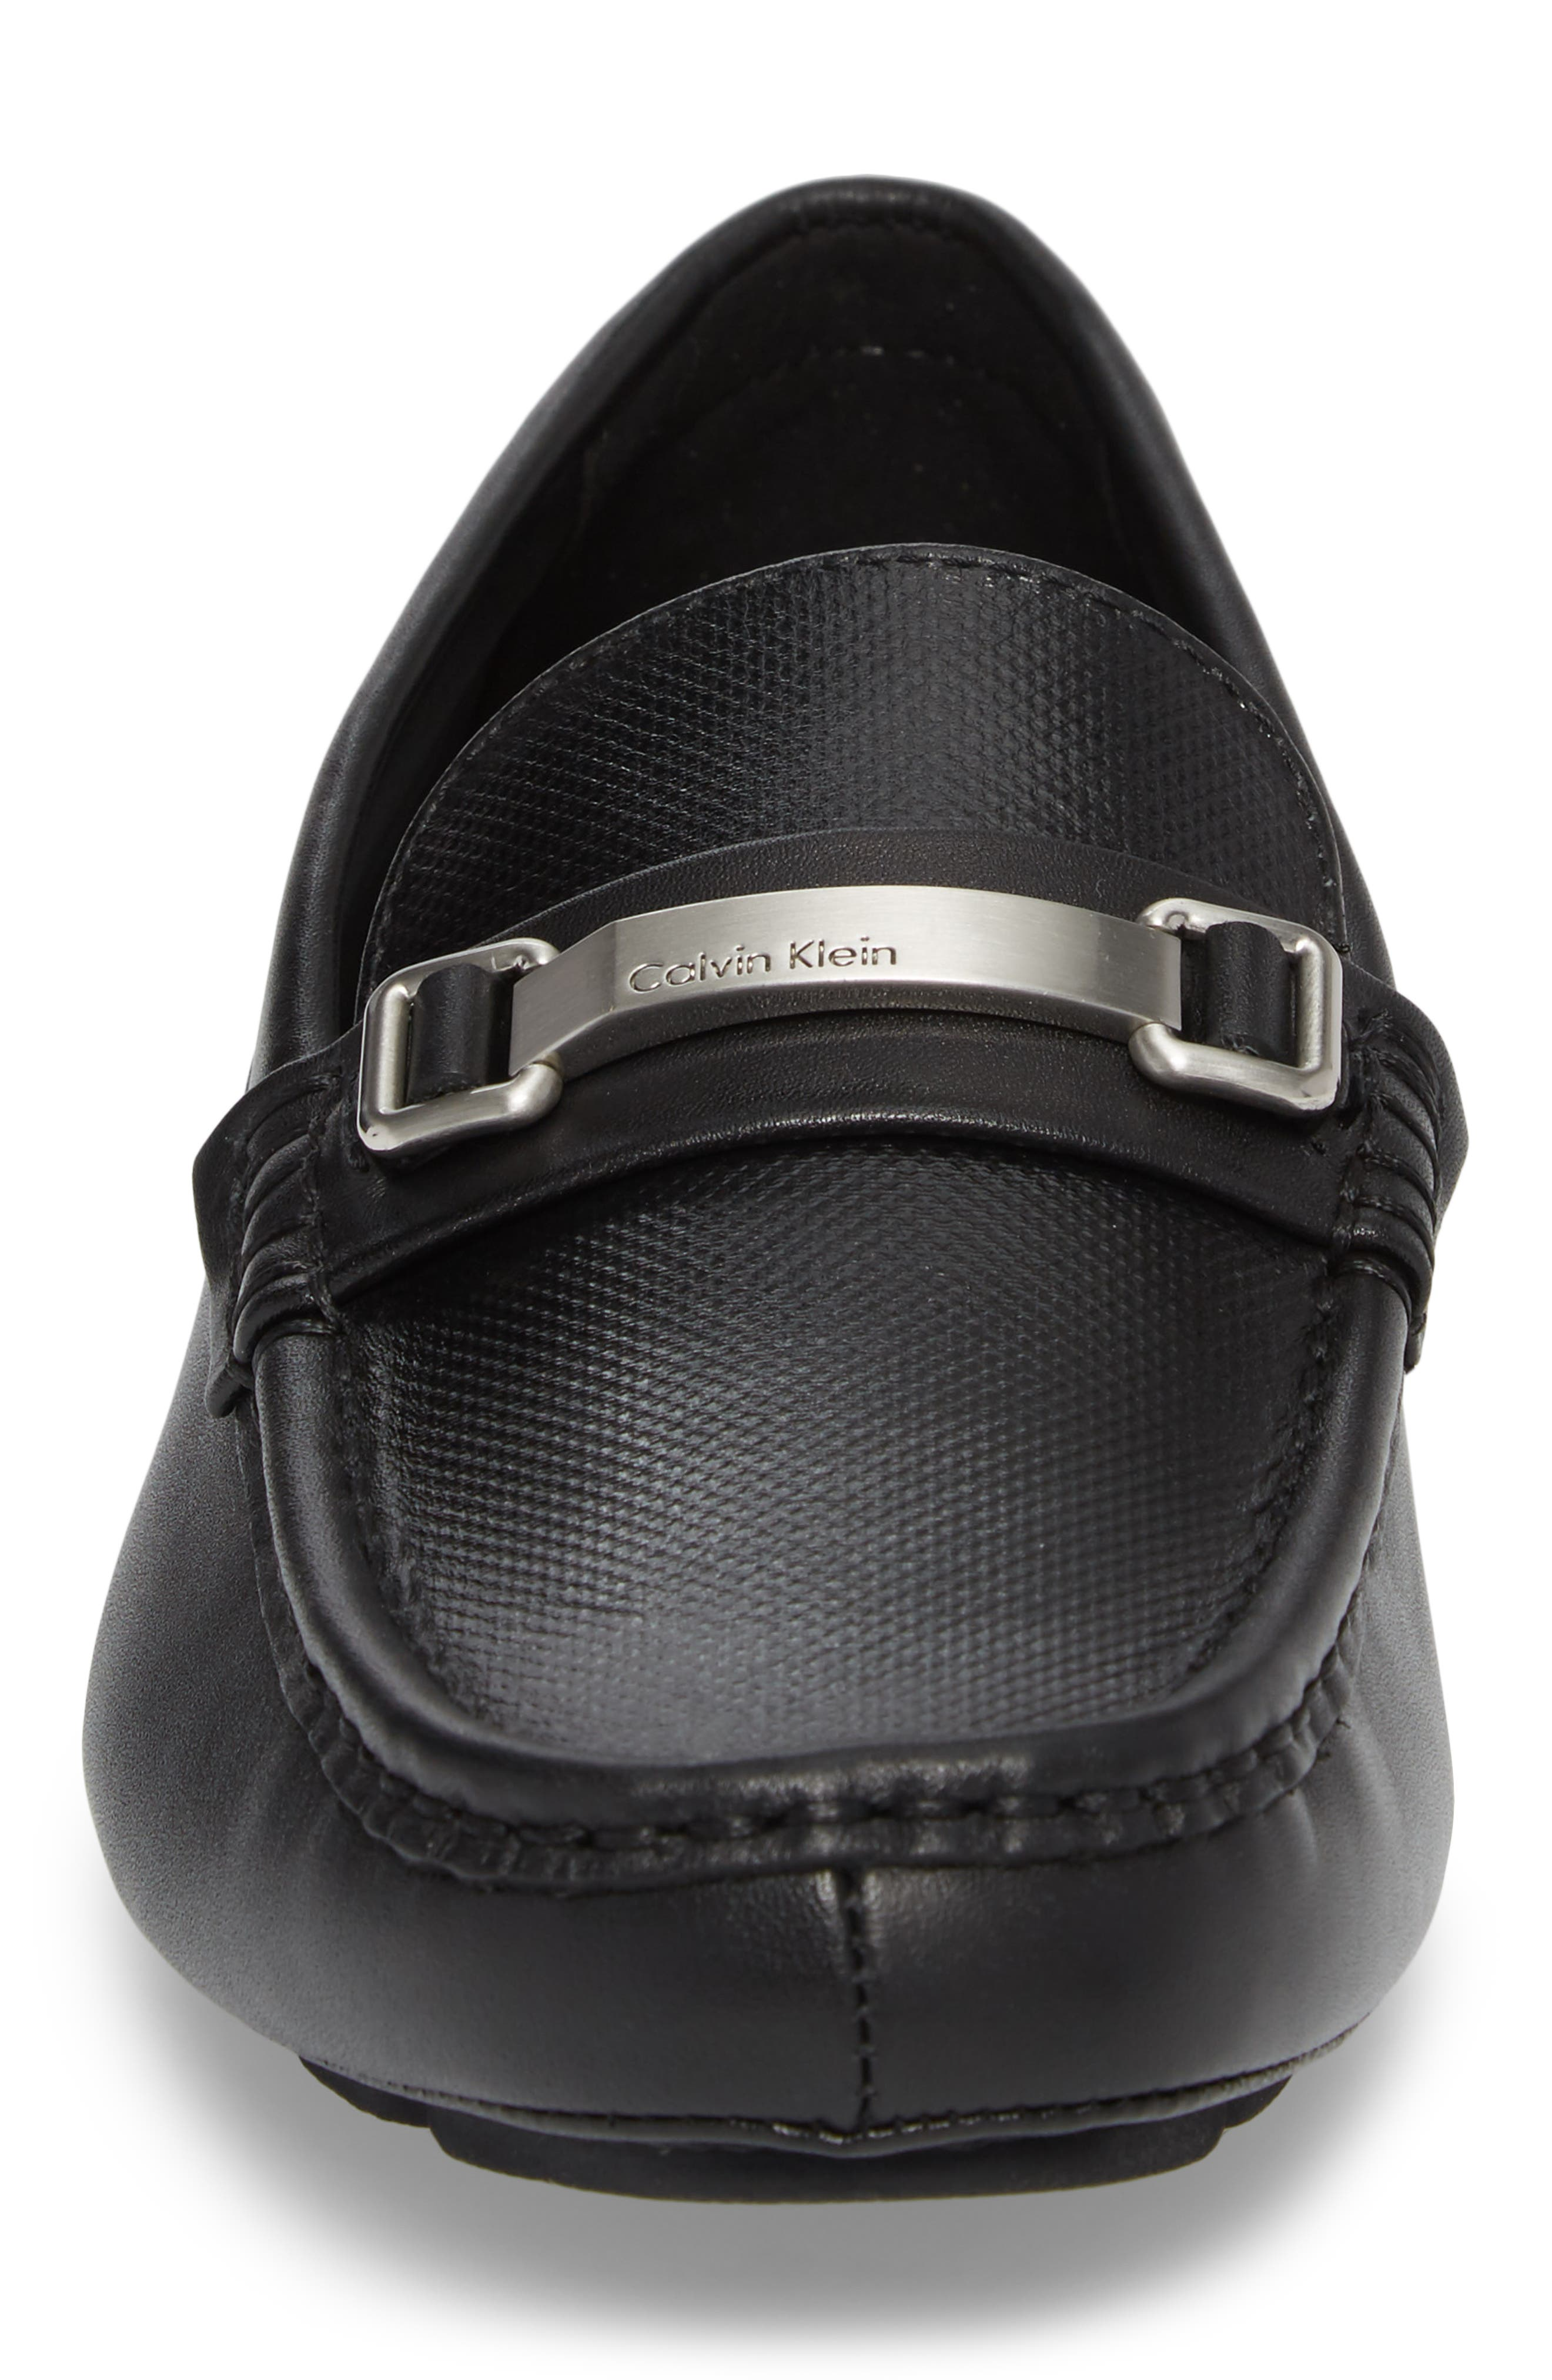 CALVIN KLEIN, Maddix Textured Driving Moccasin, Alternate thumbnail 4, color, BLACK LEATHER